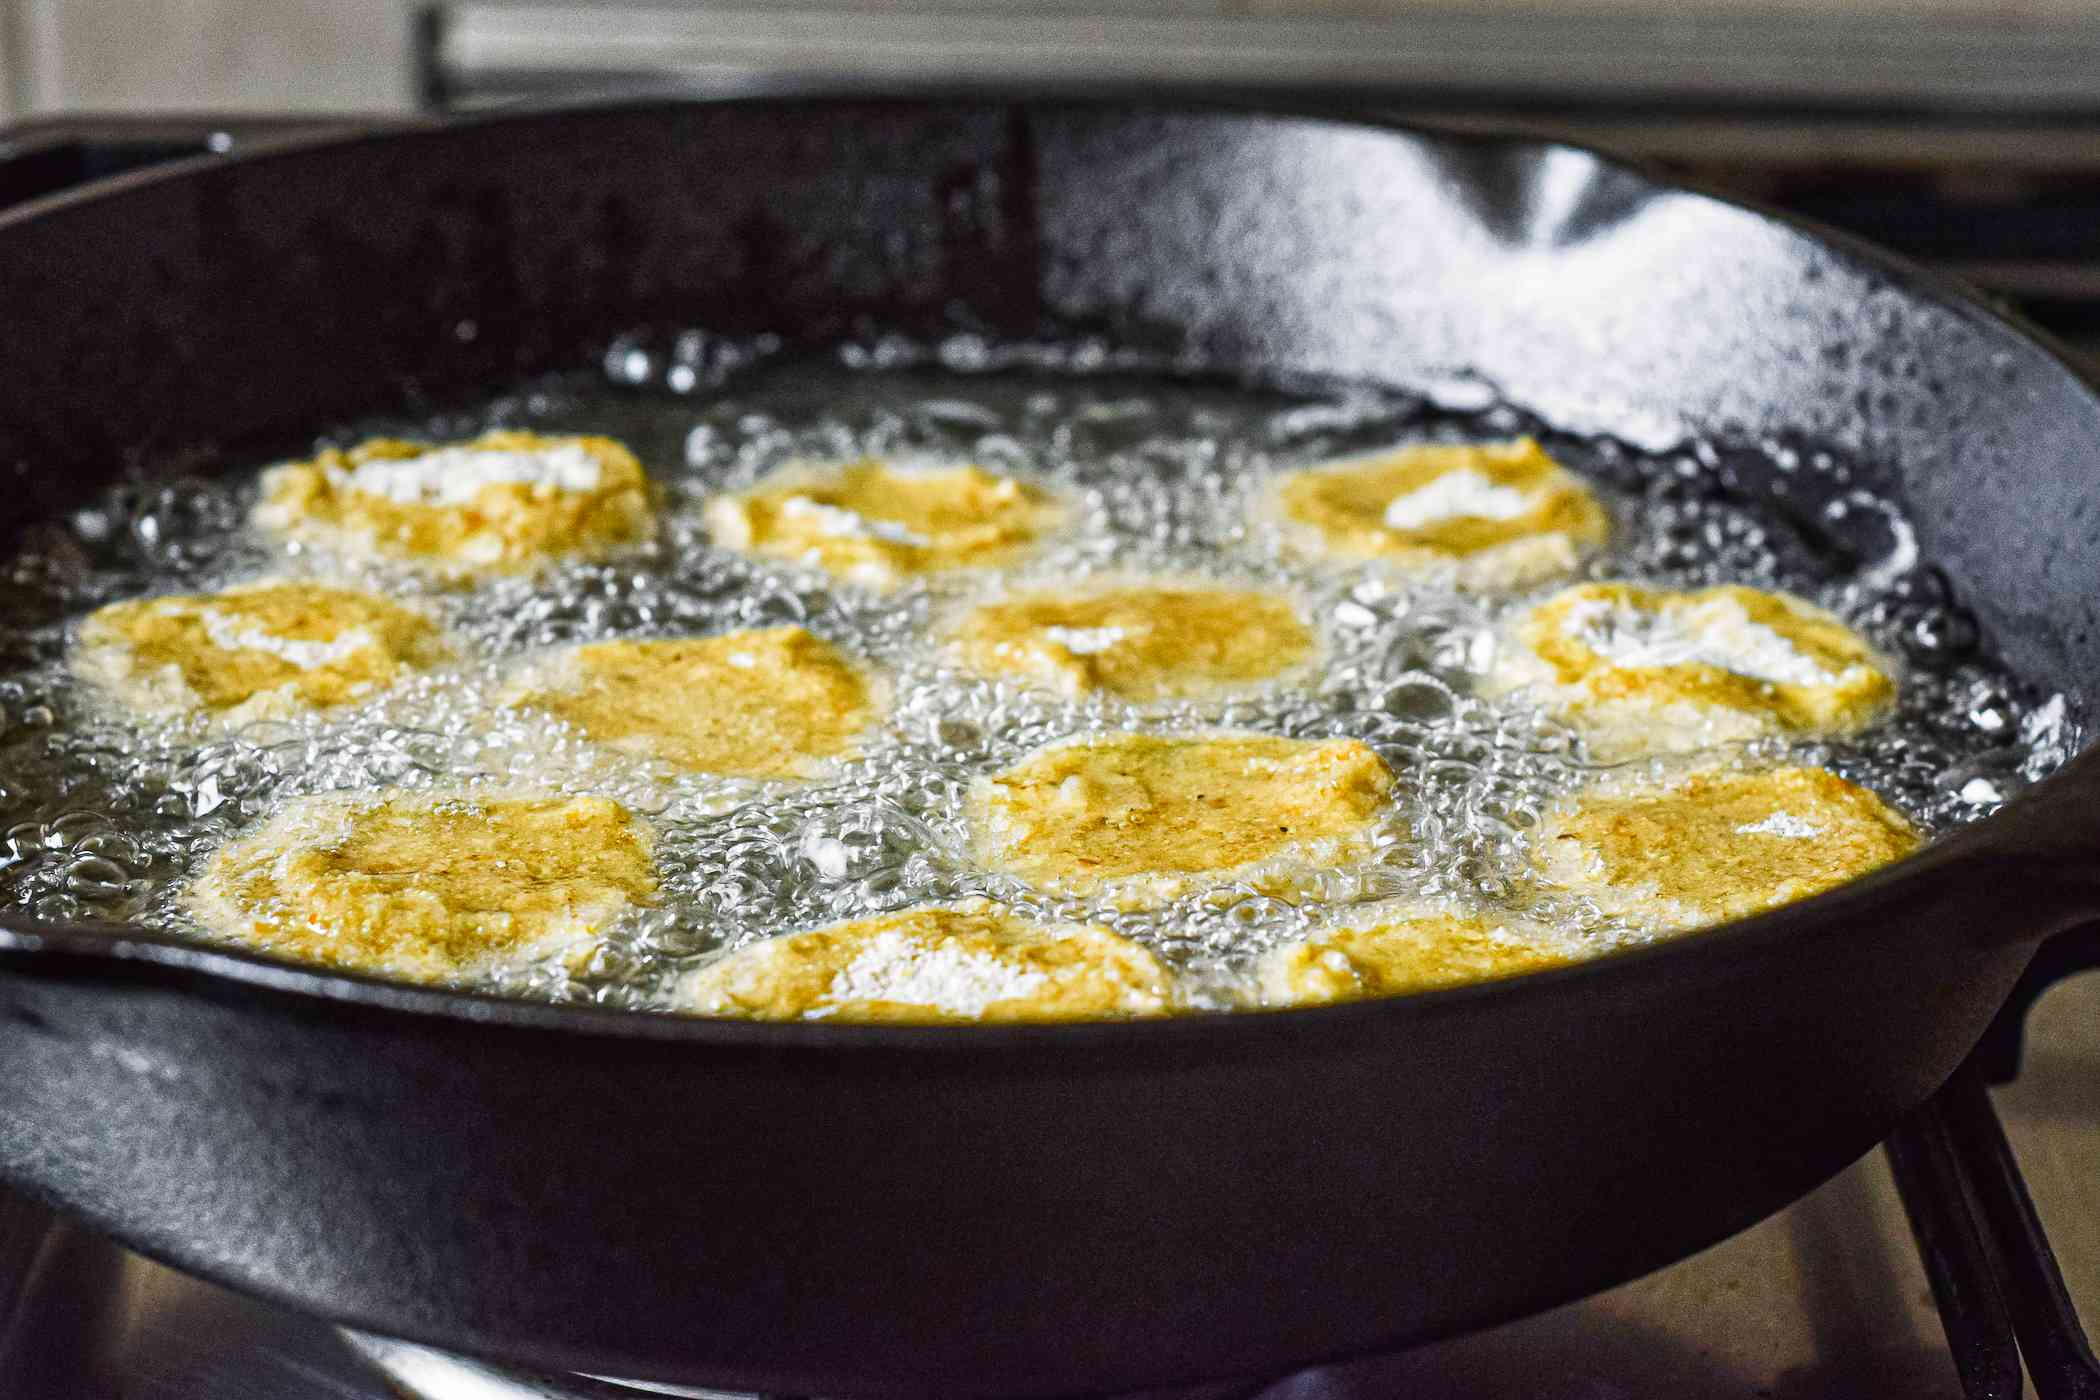 Frying green tomatoes in a cast iron skillet for fried green tomatoes.